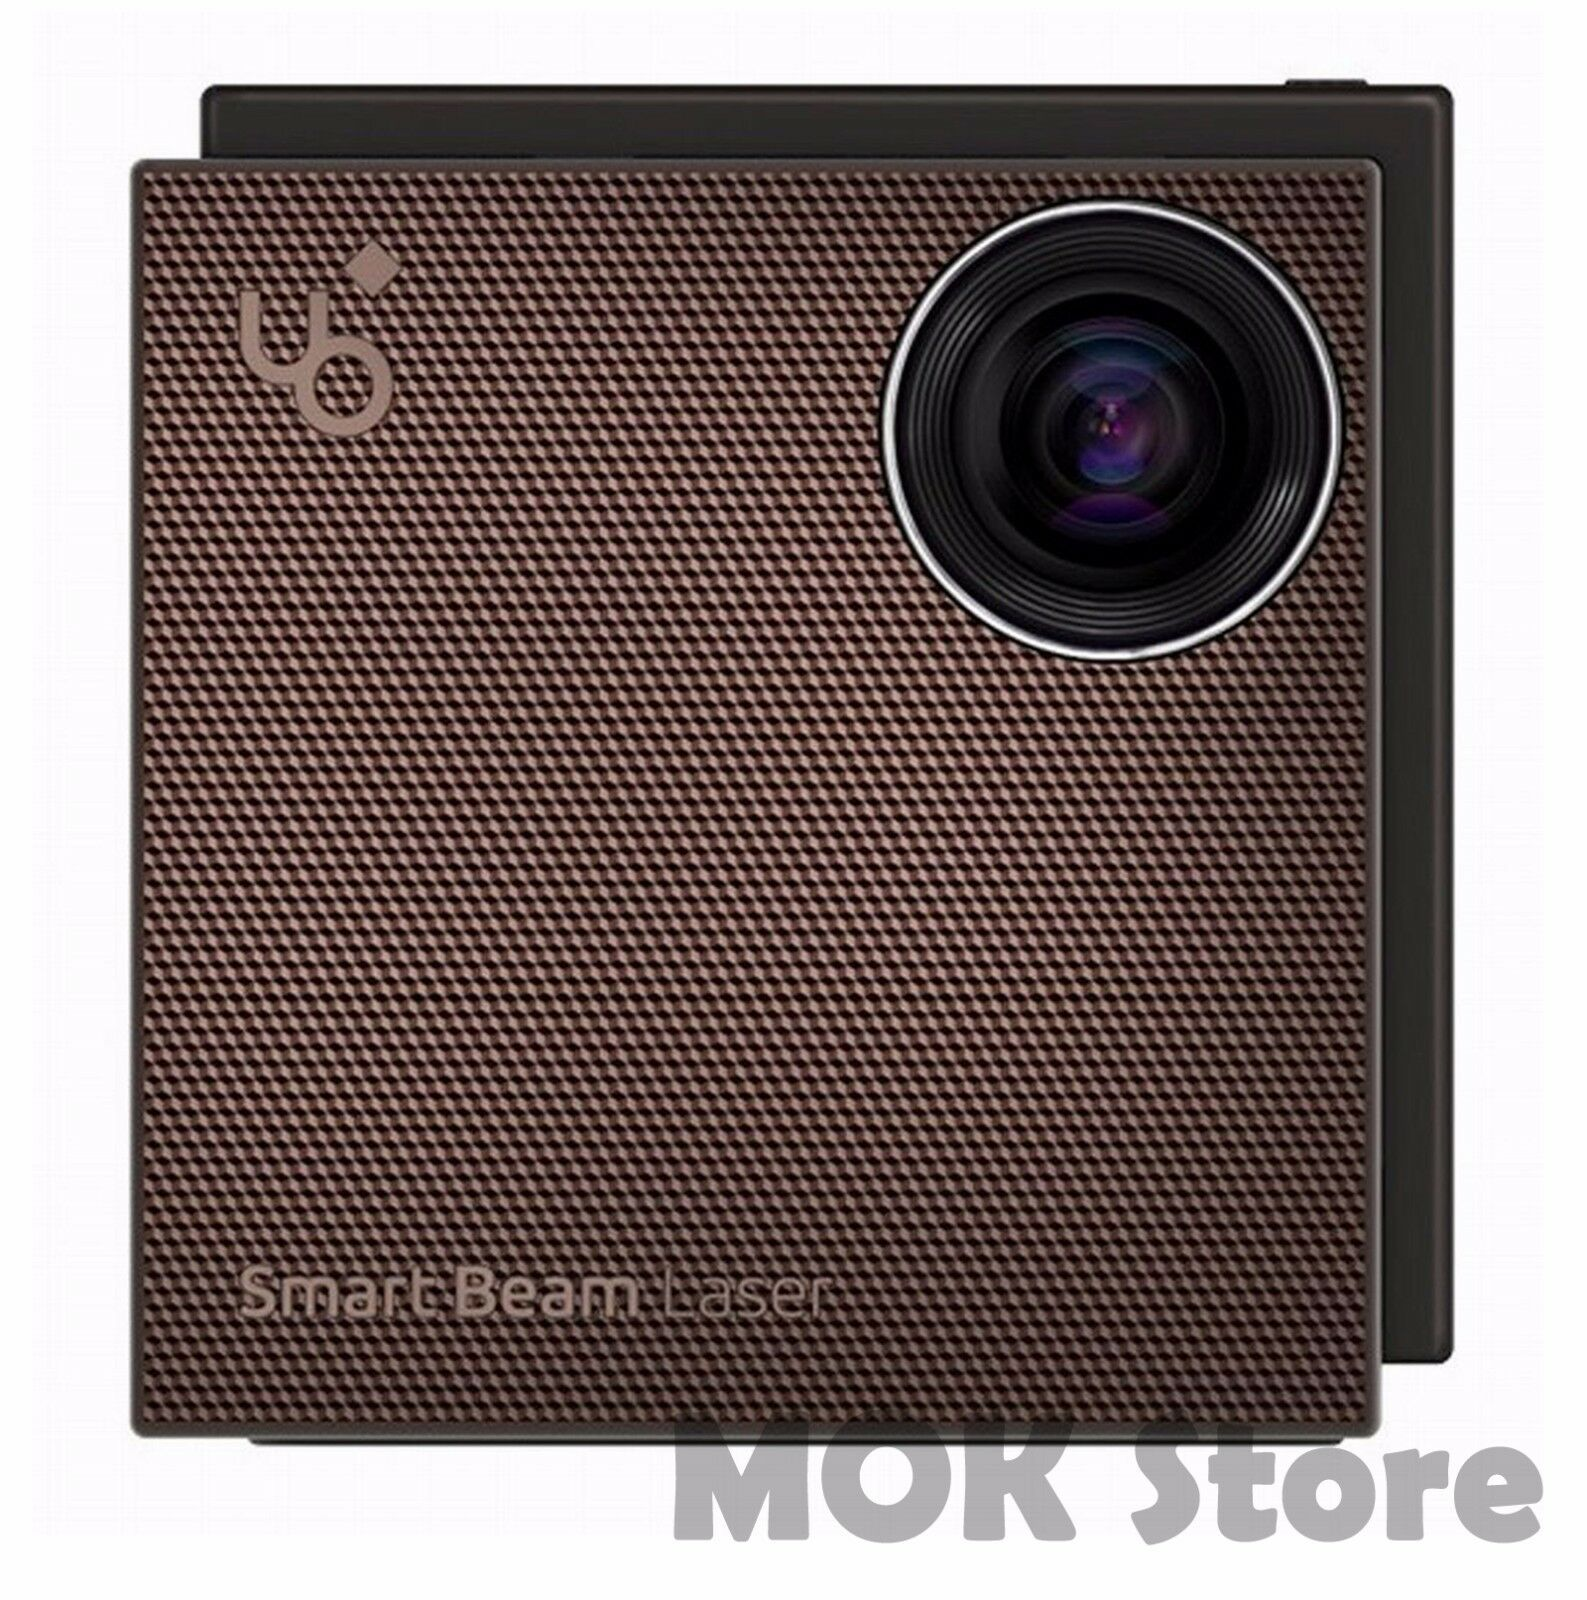 Sk uo smart beam laser mini pico projector nx lb kh6cb for Which mini projector